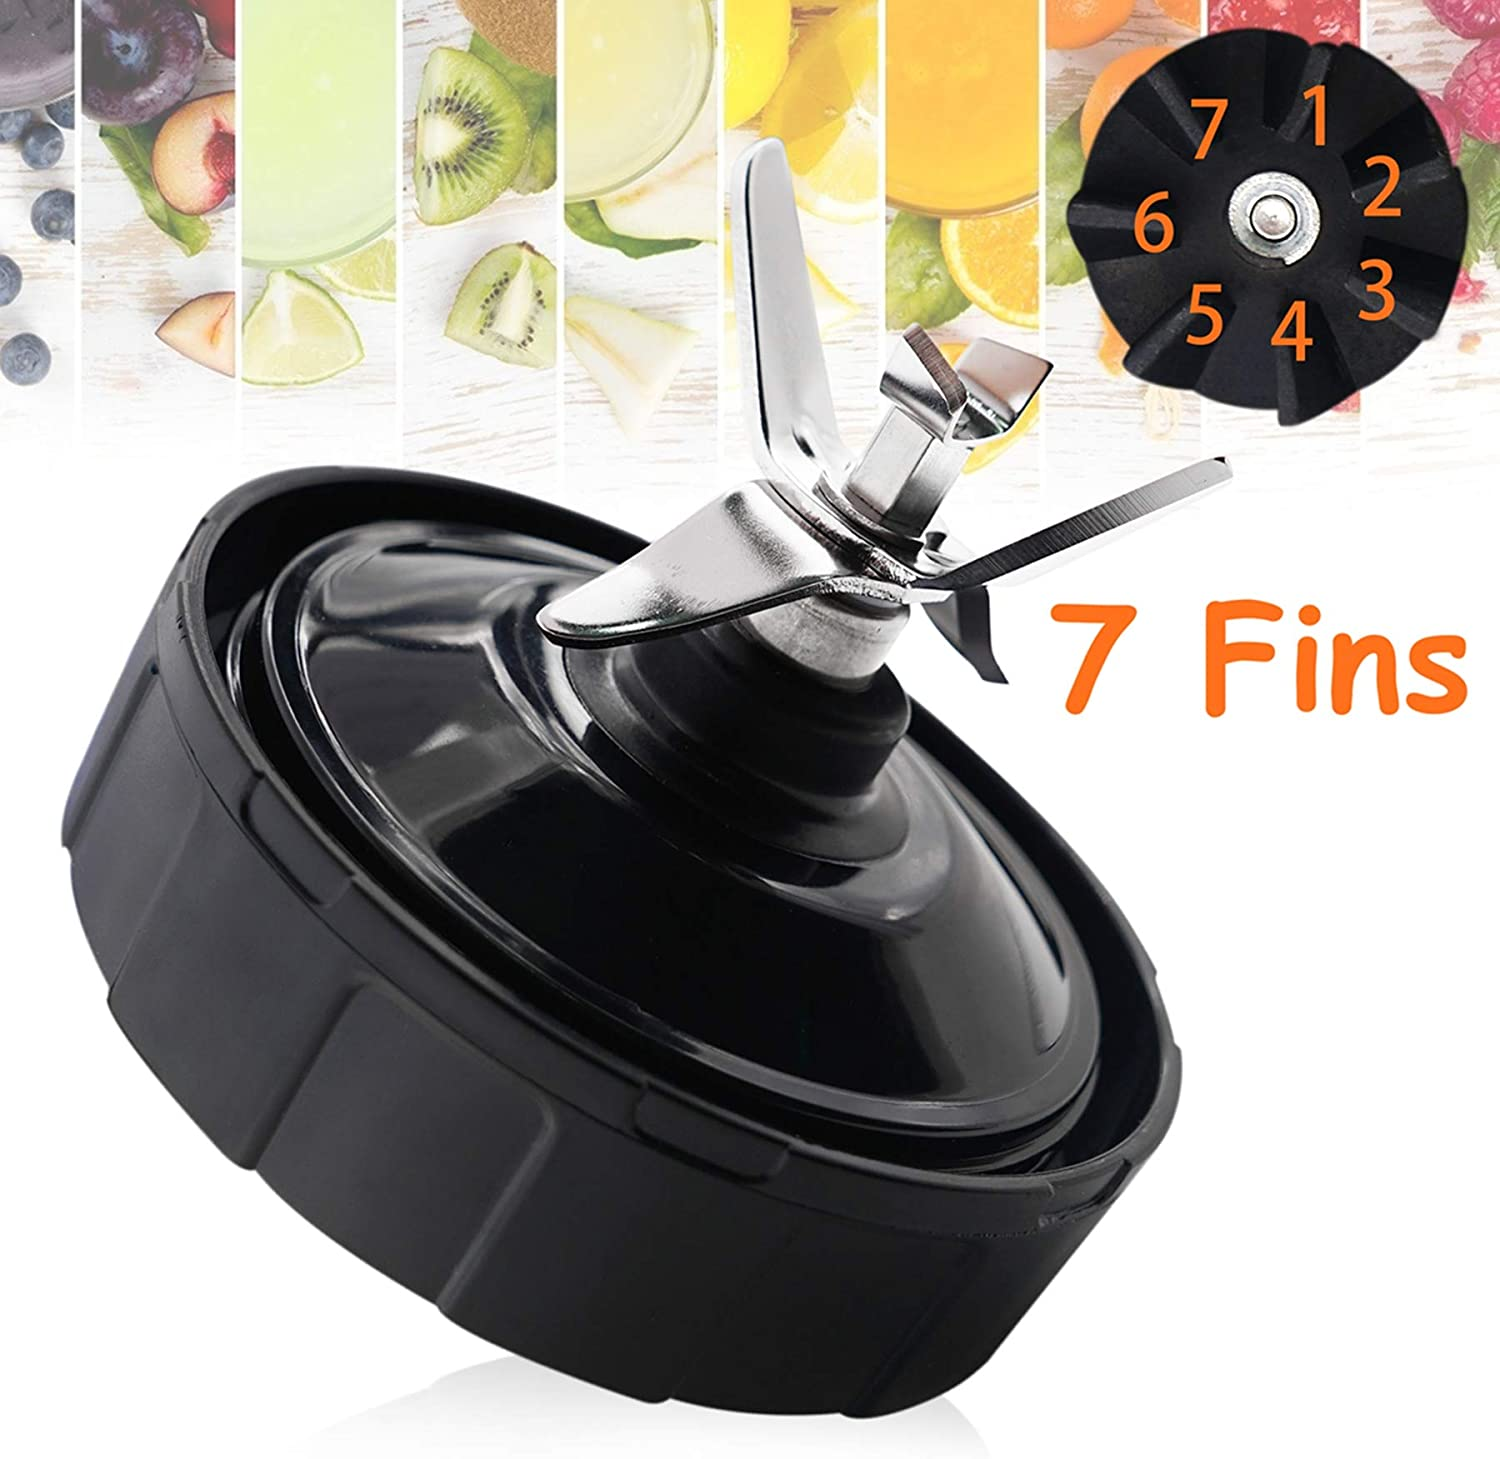 Mithome Ninja Blender Replacement Parts, Ninja Blender Parts Nutri Ninja Blender Blade Ninja Blender Accessories Extractor Blade Assembly with 7 Fins ...